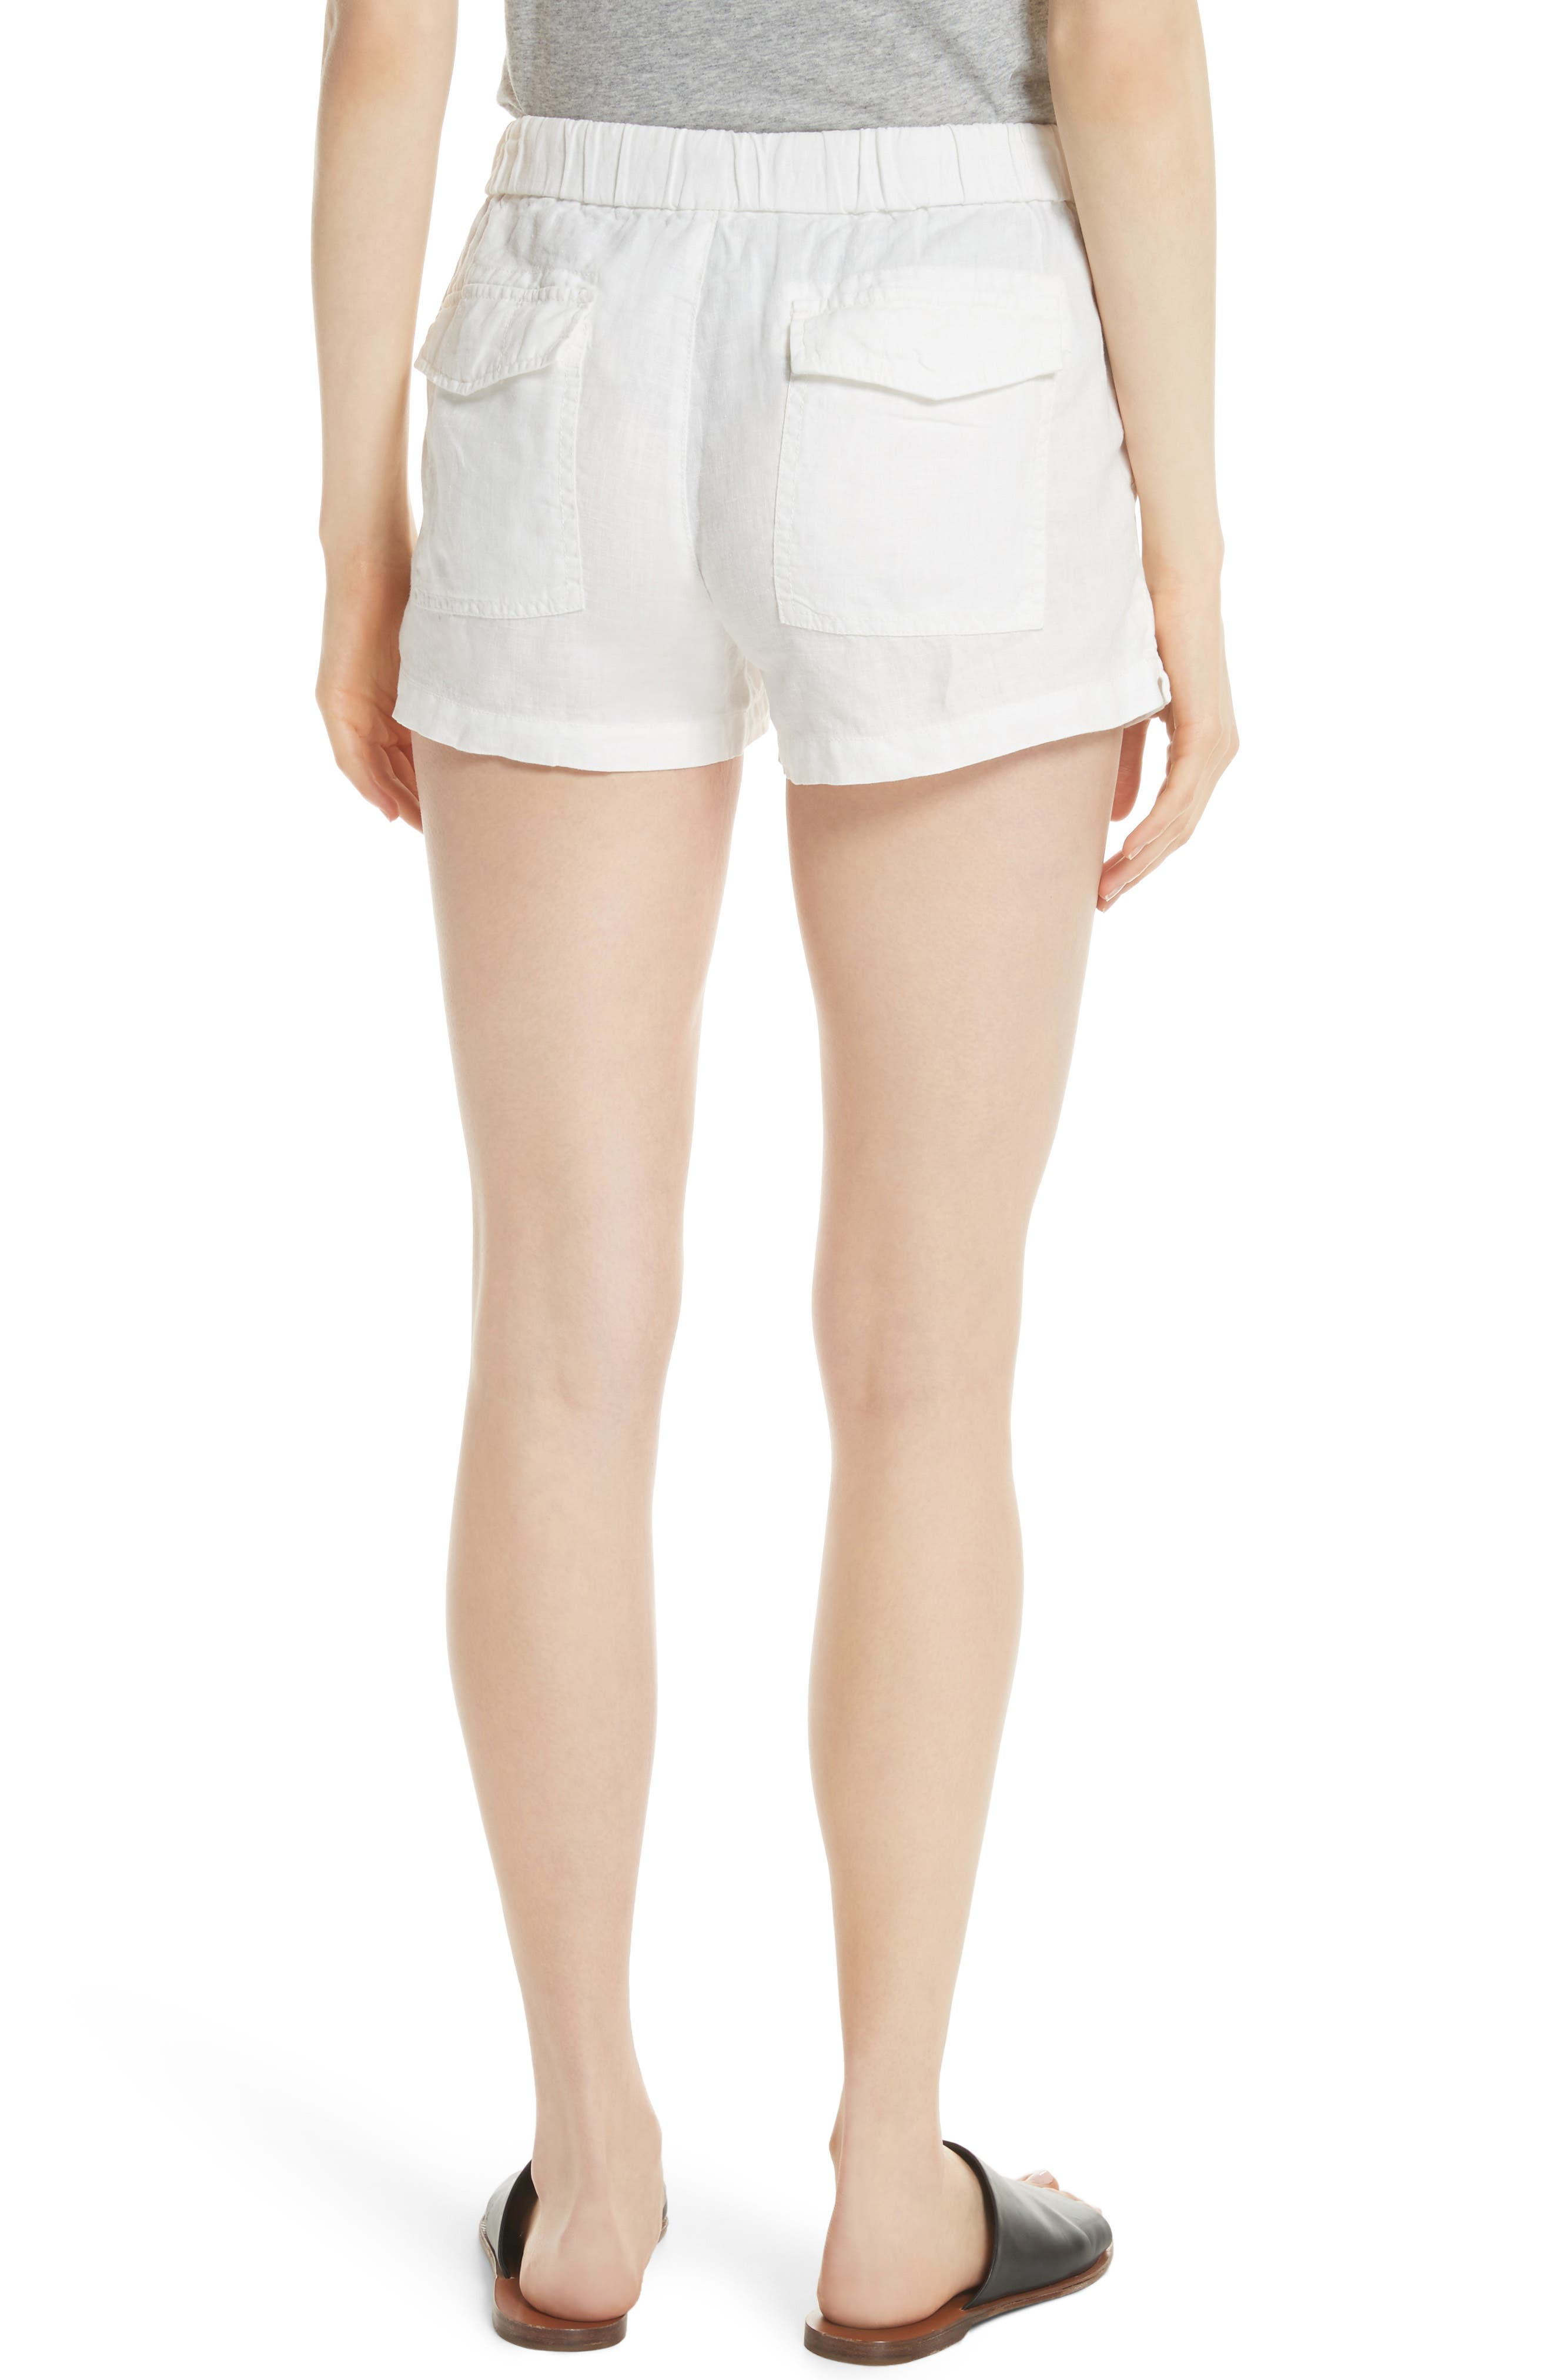 Fosette Linen Drawstring Shorts,                             Alternate thumbnail 4, color,